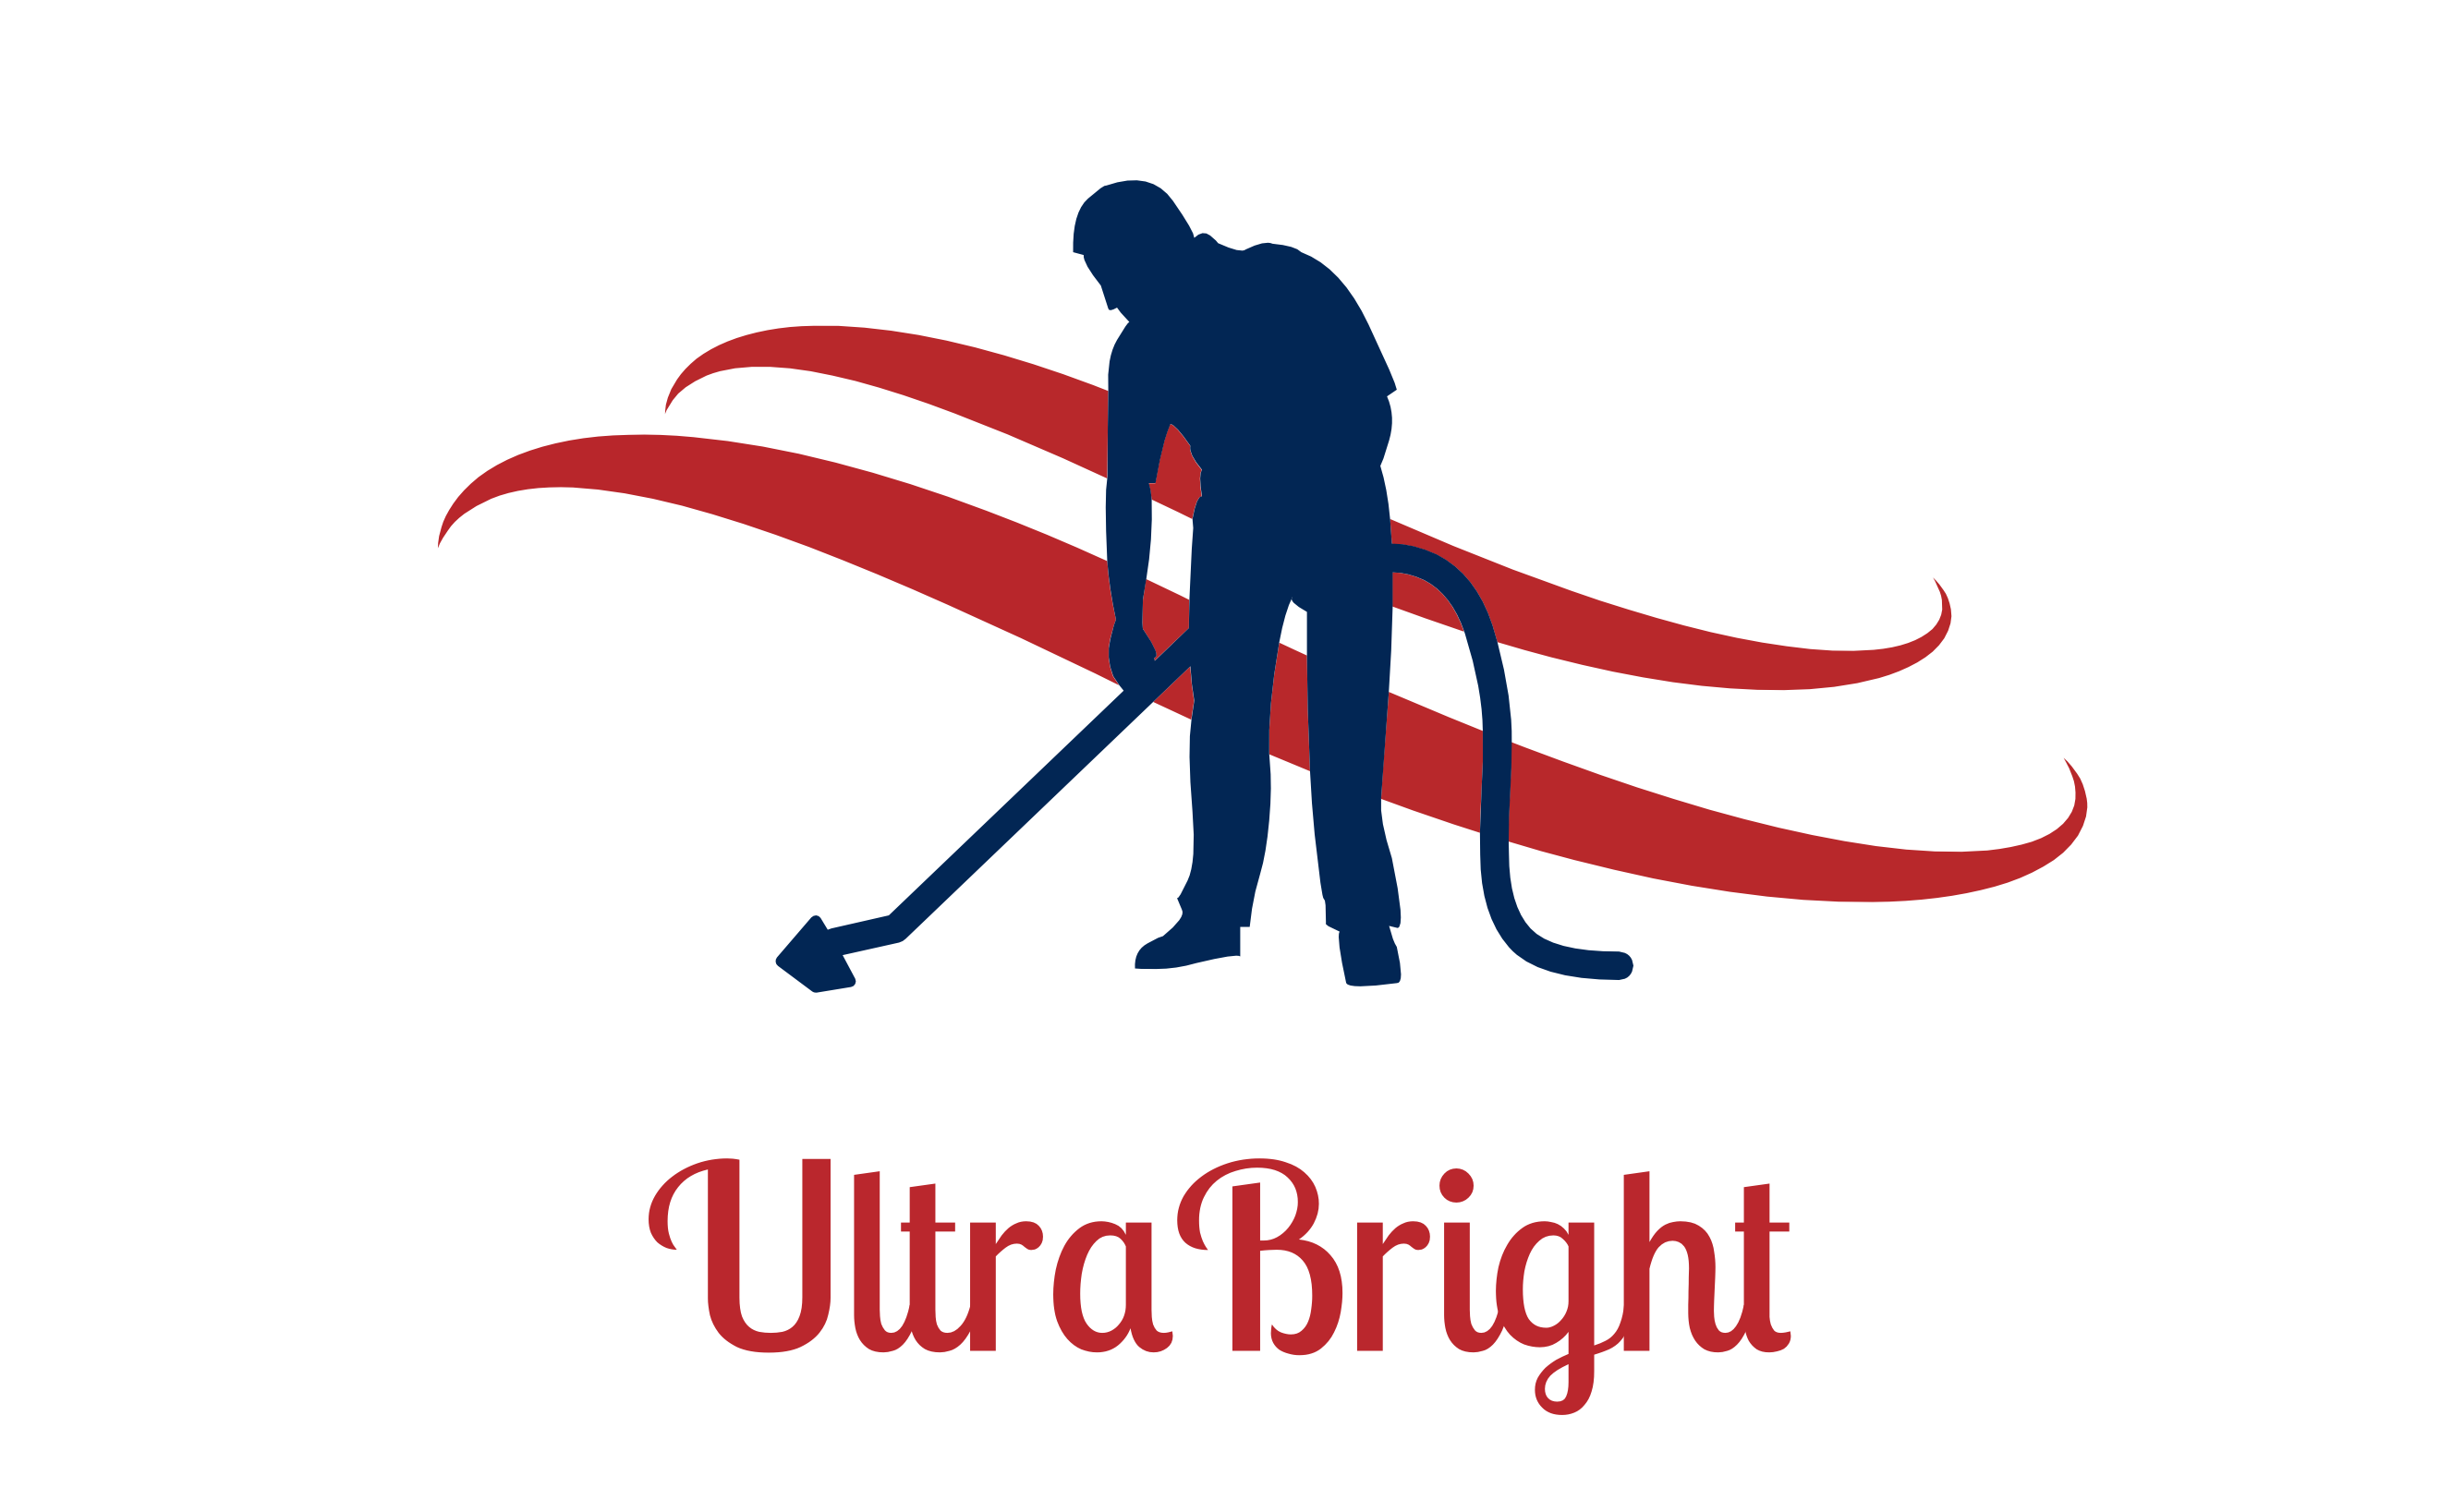 UltraBright